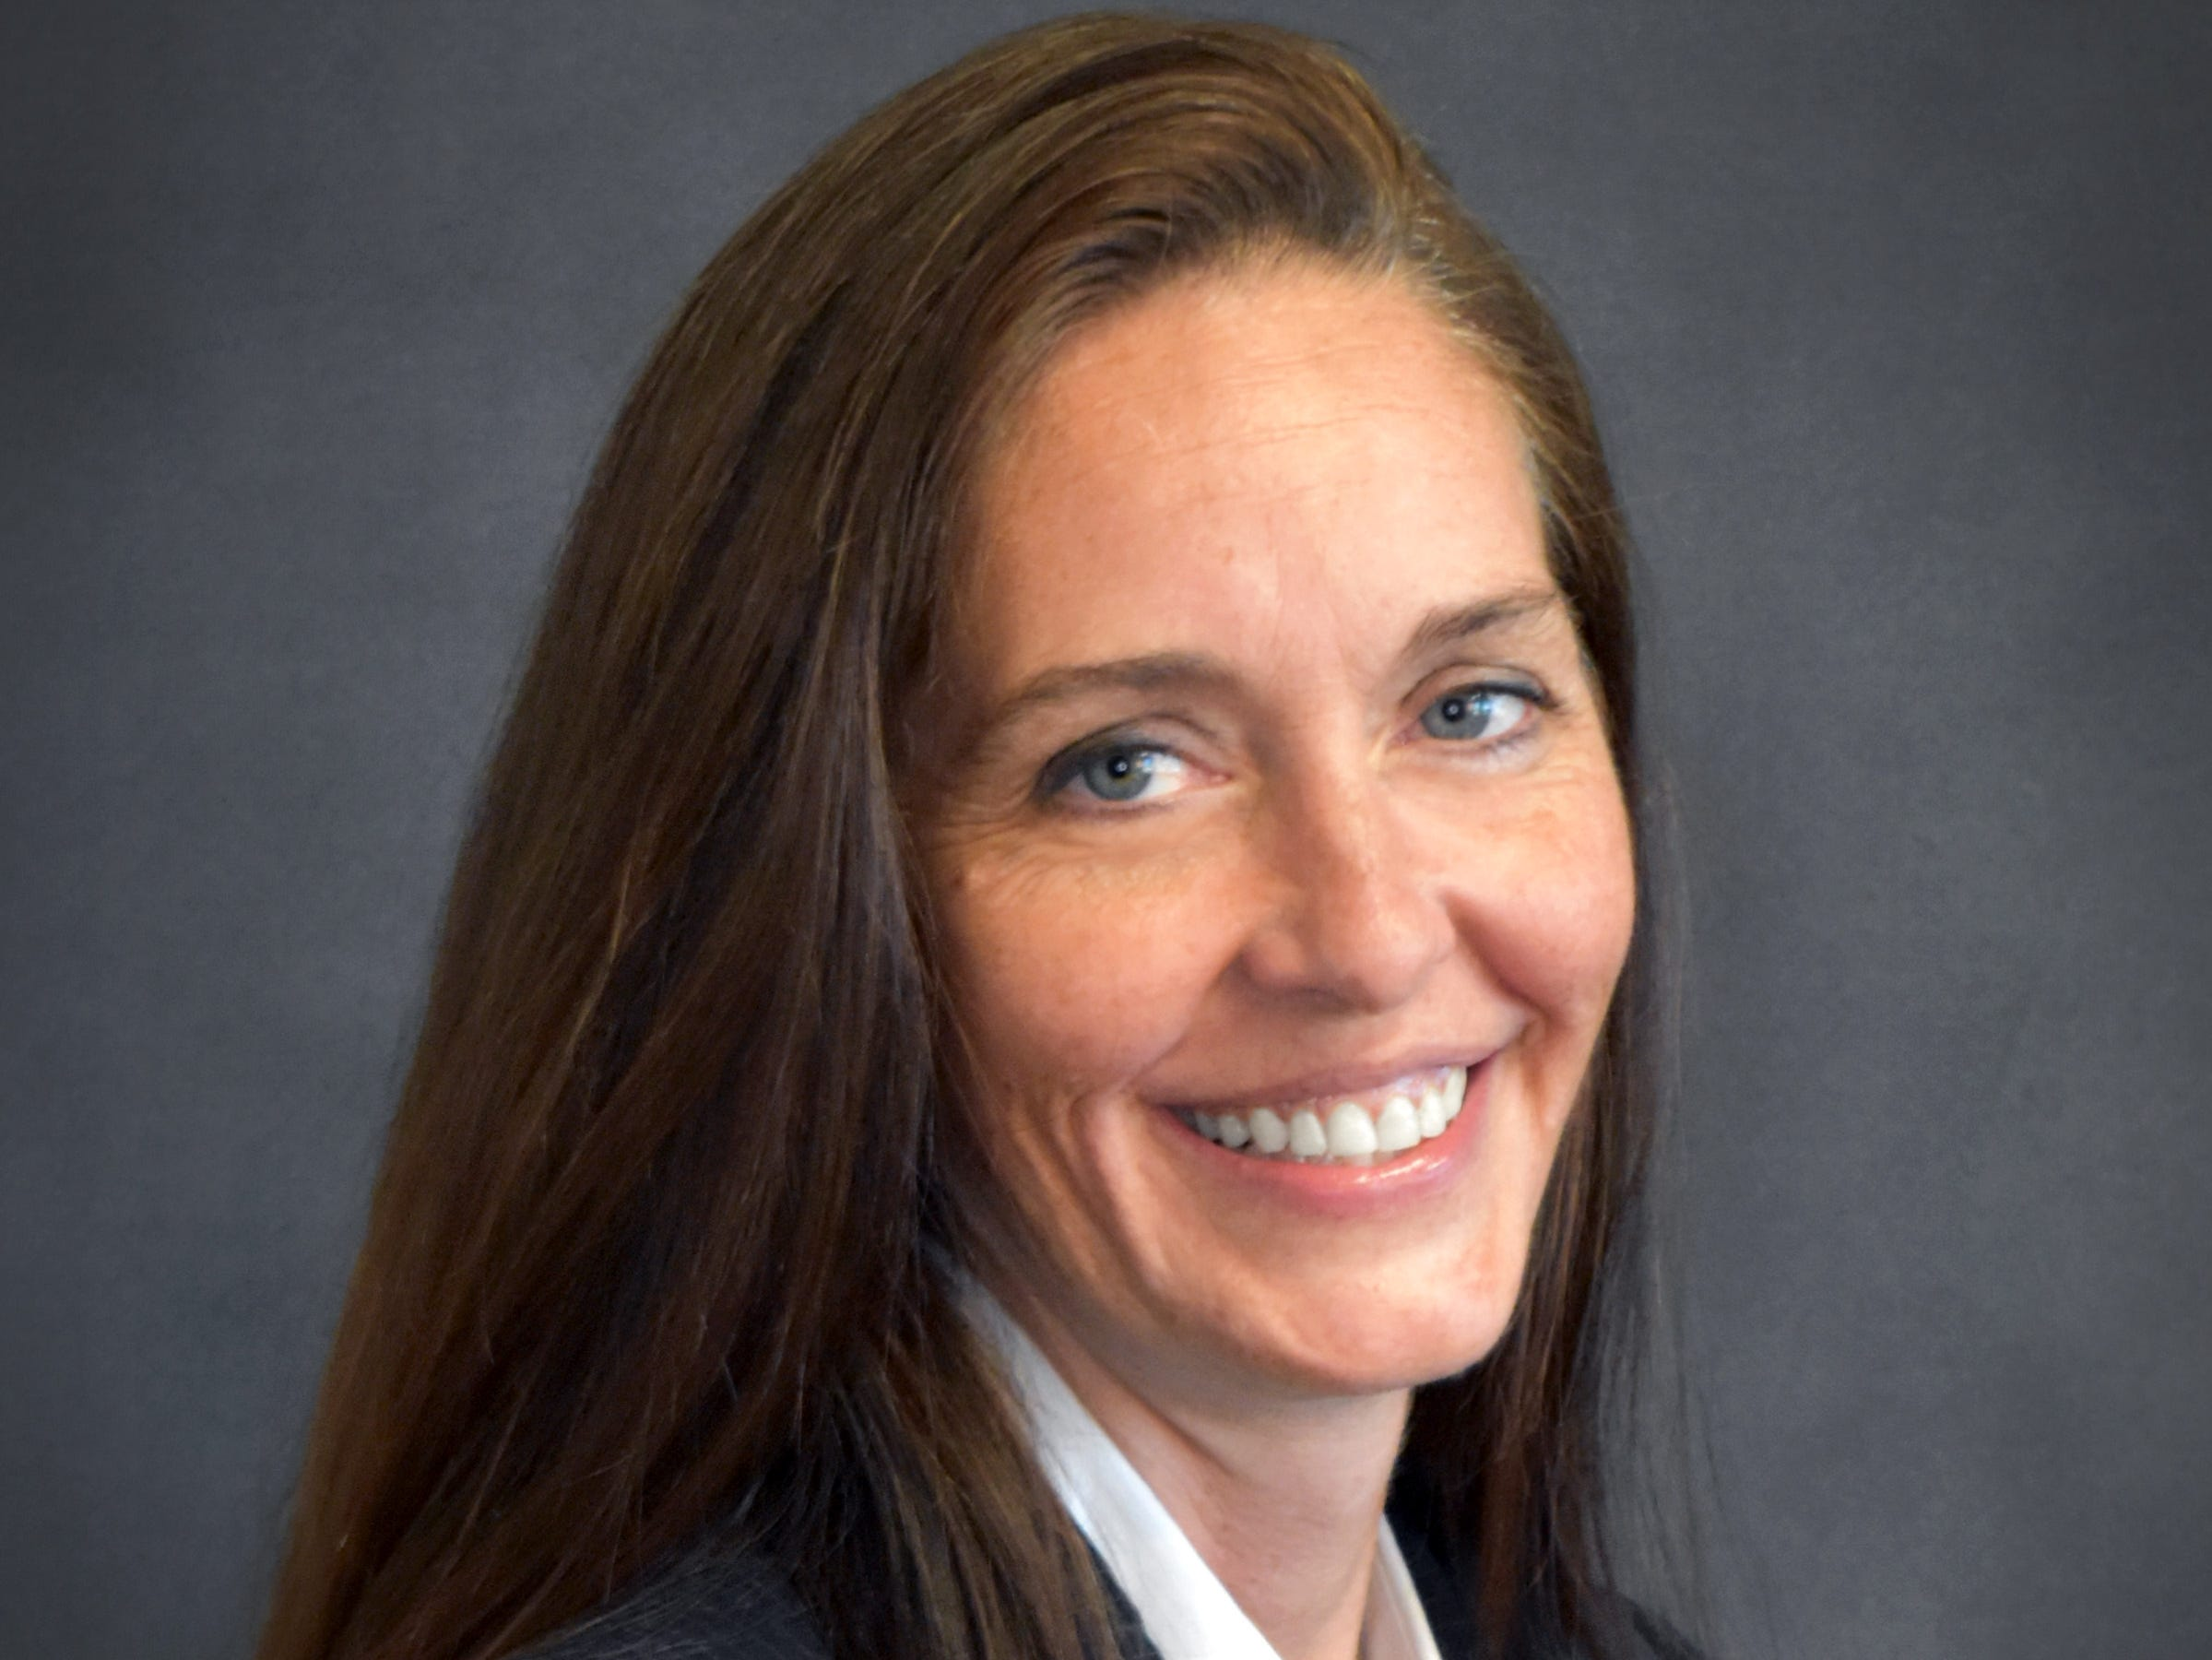 Lisa Morrell hired as Palm Bay city manager on a permanent basis